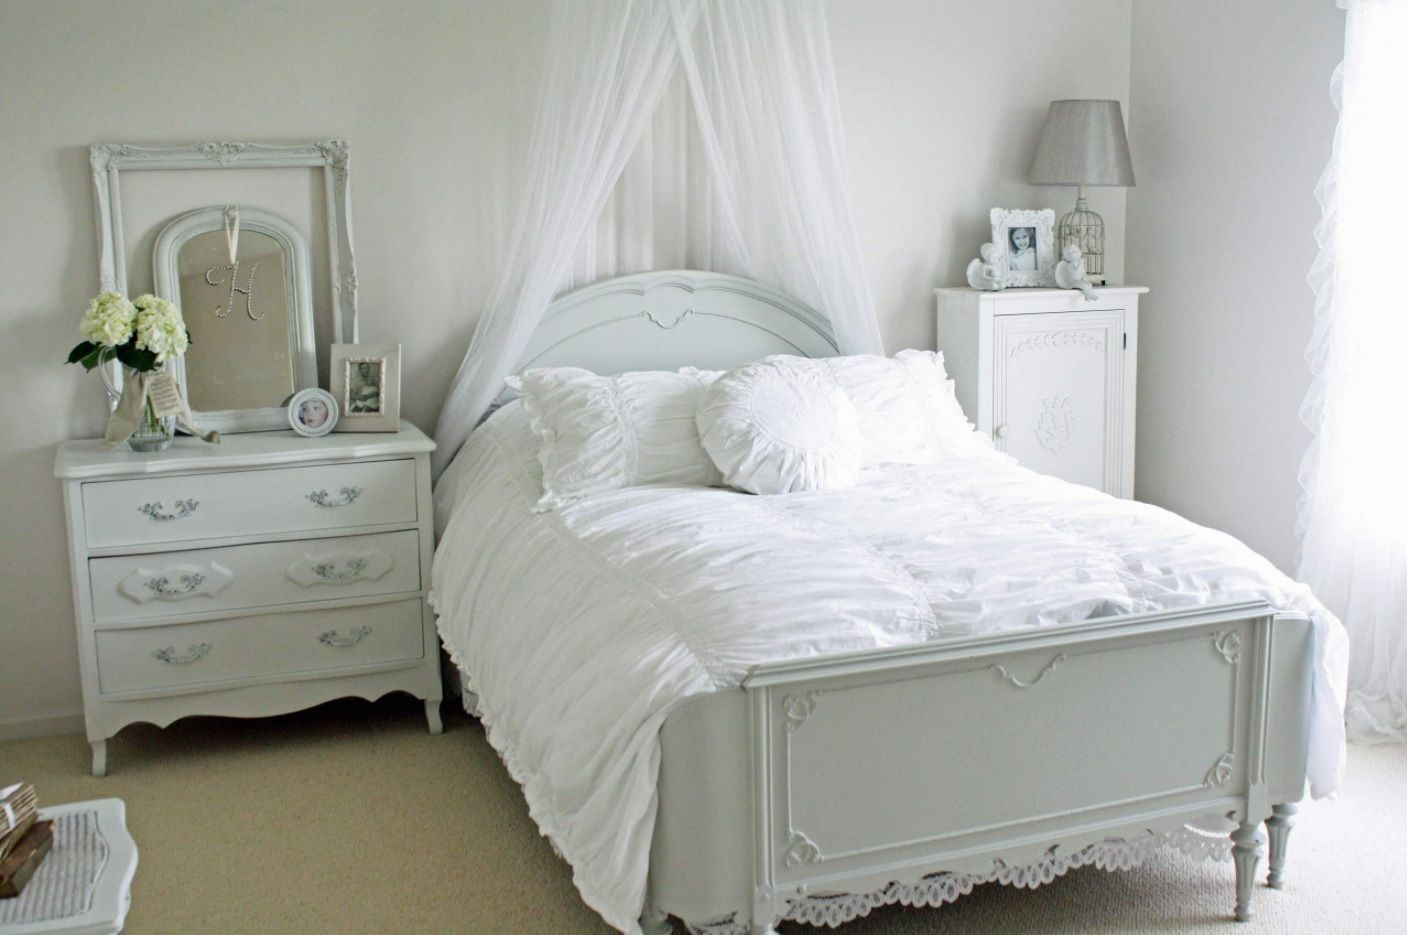 White Bedroom Furniture Set Ideas & Photos. Grayish tone of the furniture in light decorated room